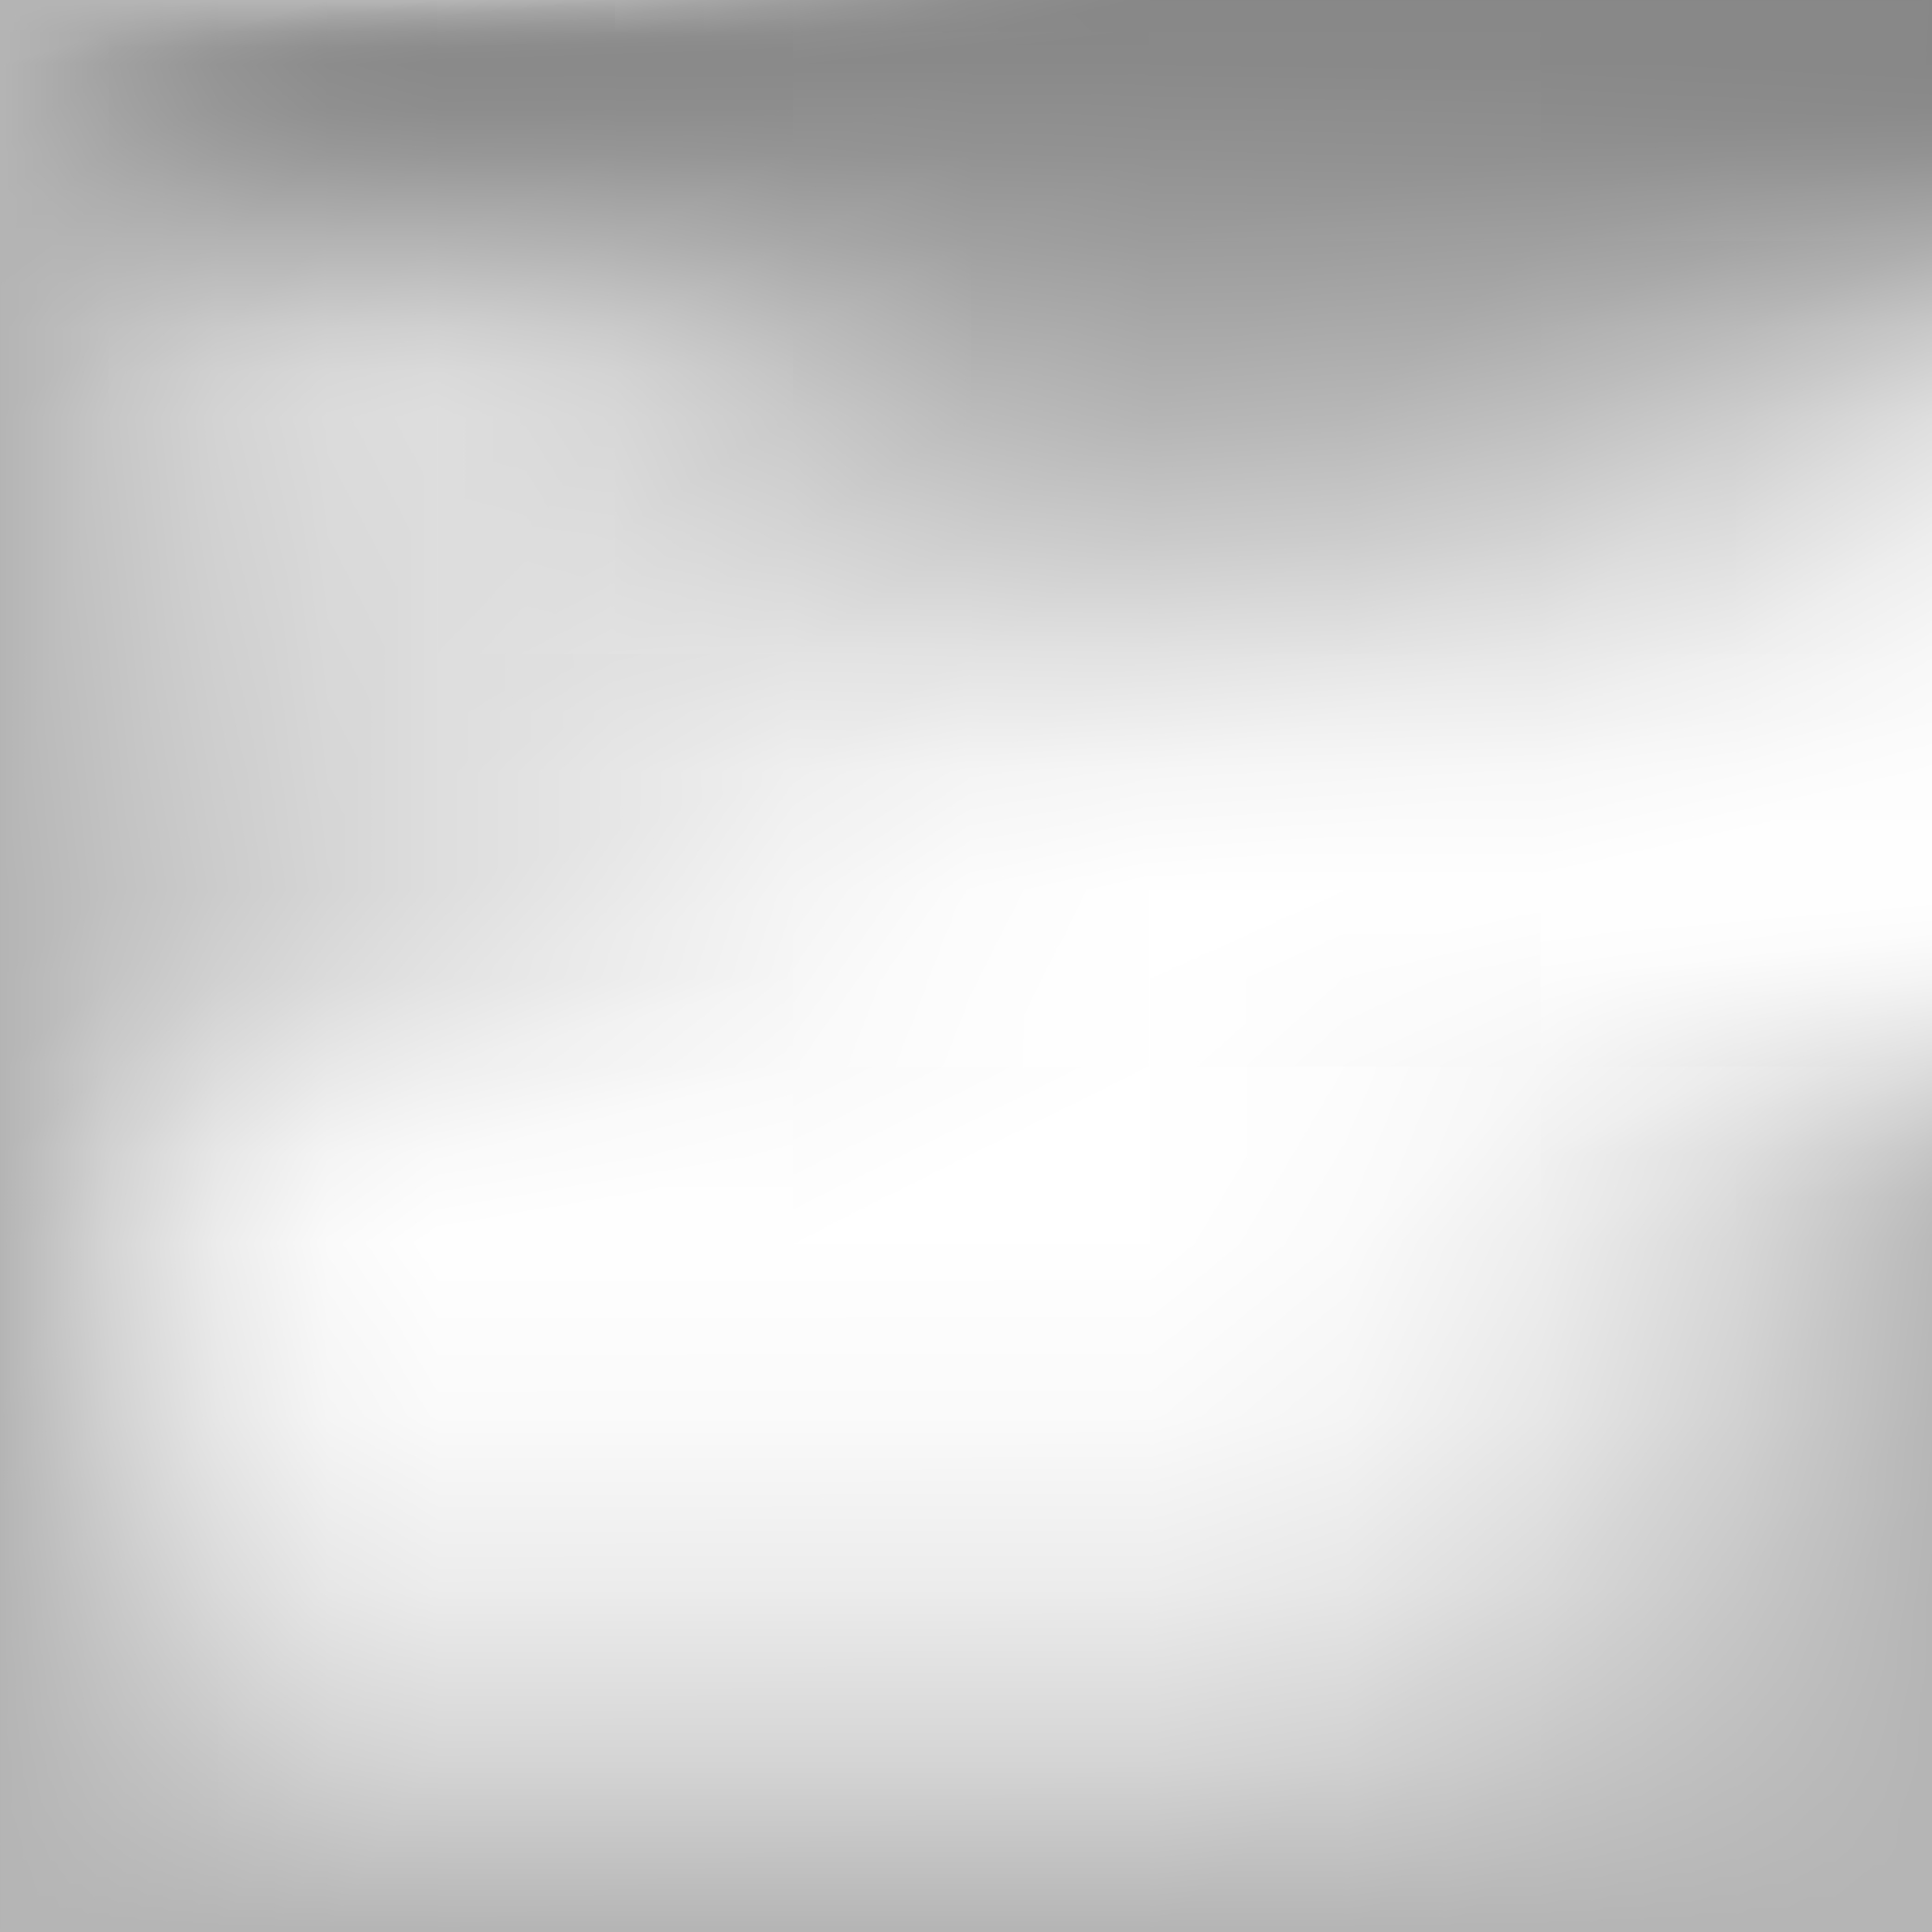 Blurred silver effect holographic gradient background example image 10